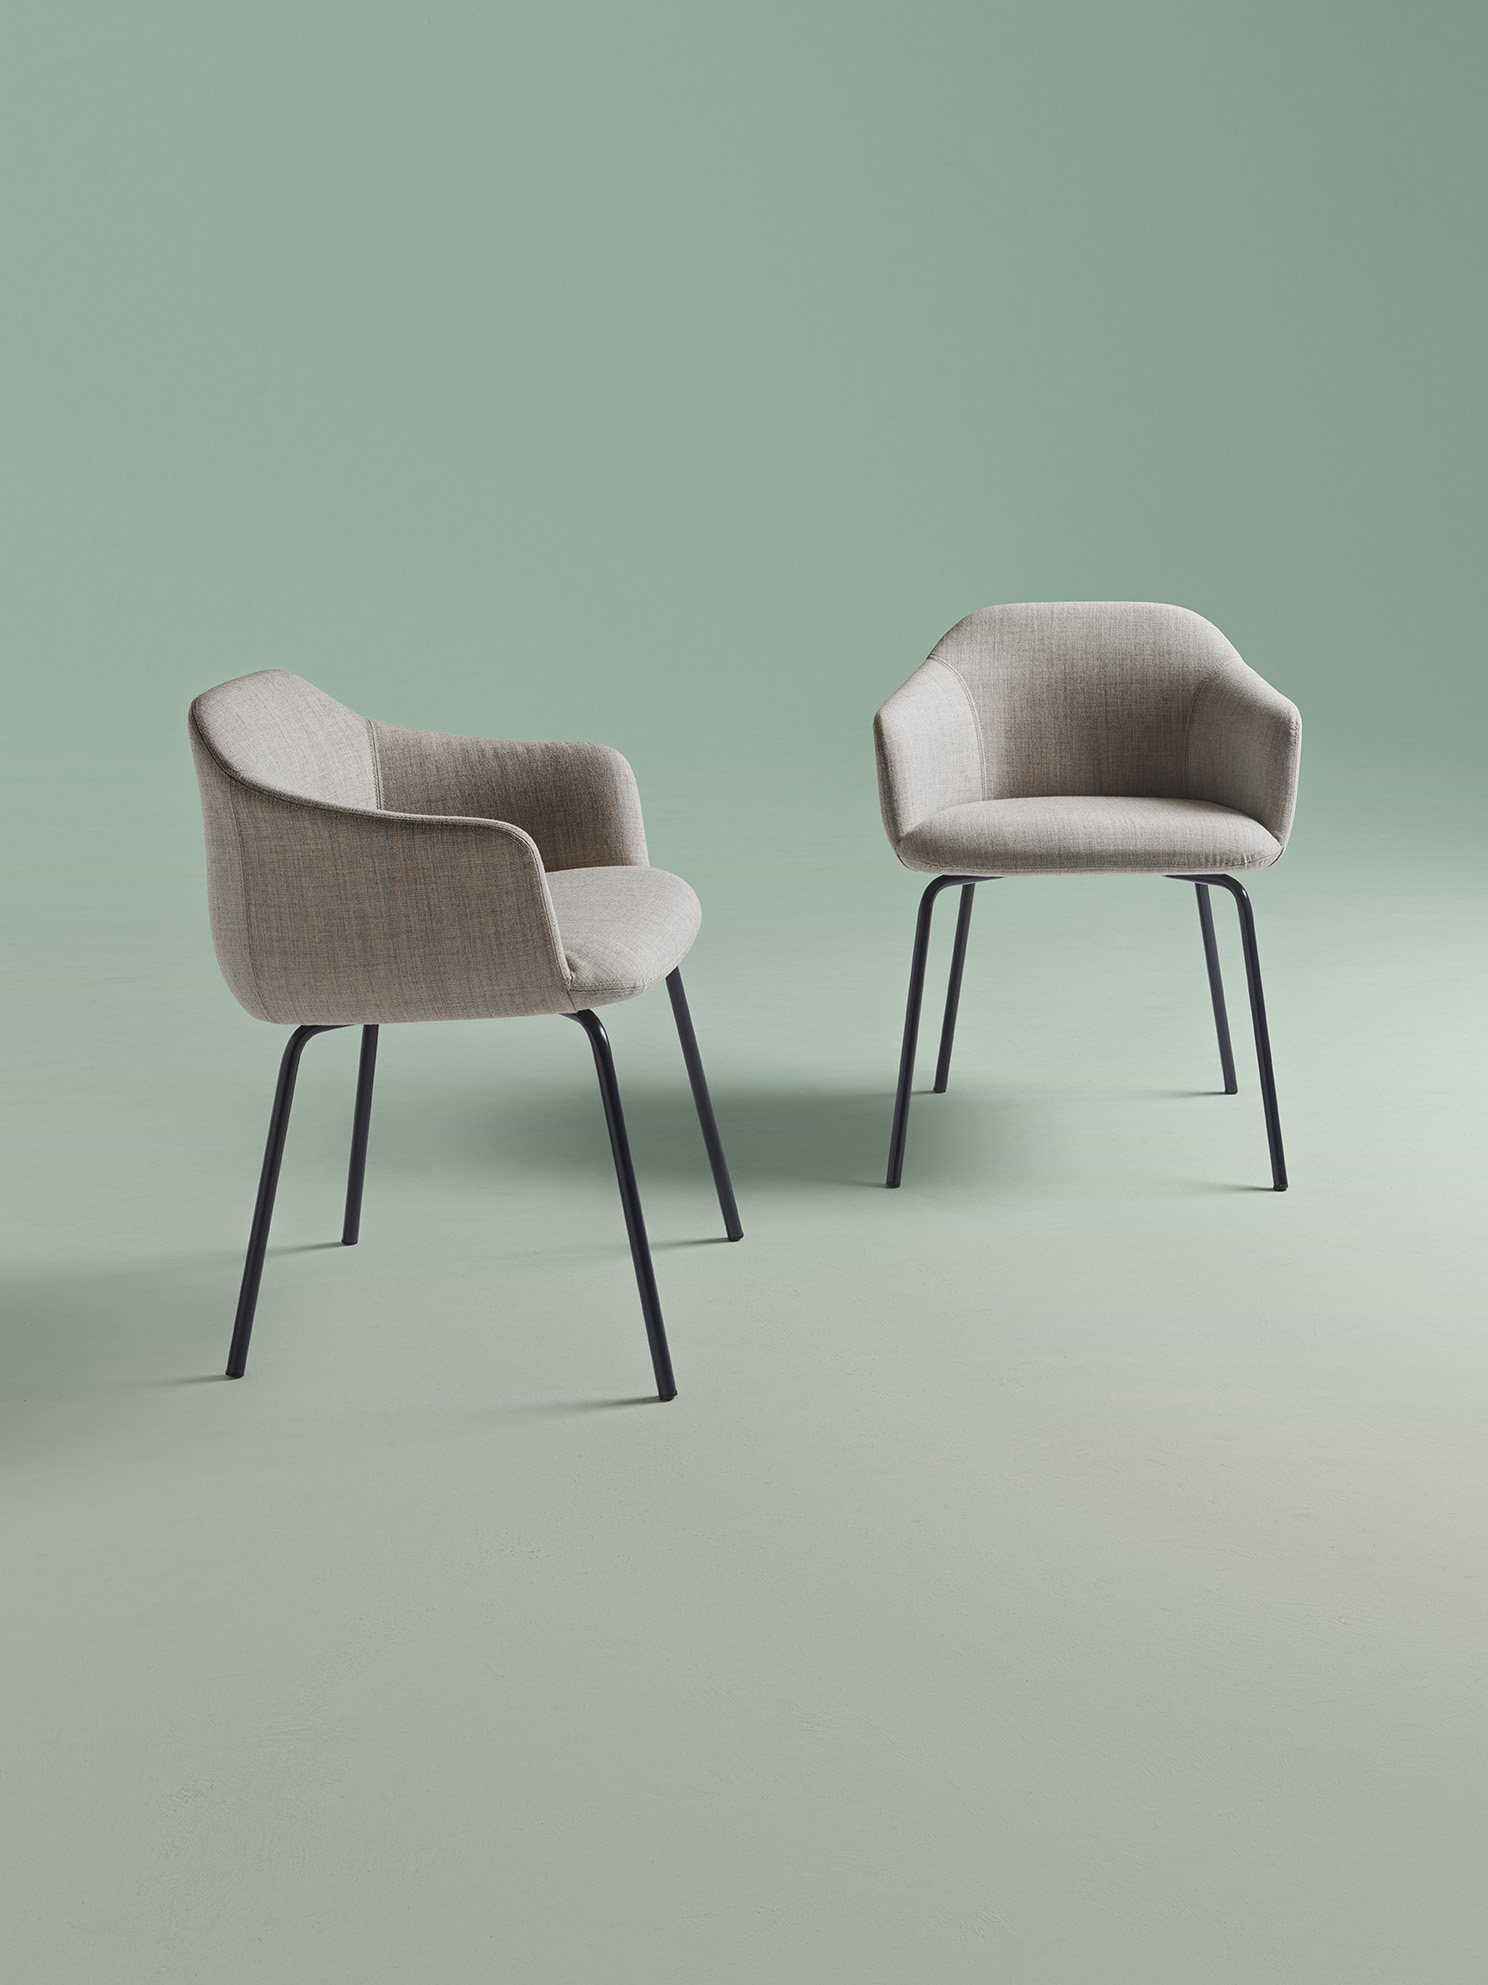 """Cloe Armchair - <p>The Cloe armchair, with its sinuous, continuous design, takes its cue from the delicacy of flowers. The back and seat, both padded with polyurethane foam and resting on a slender iron structure, offer comfort and softness, for the impression of being """"seated on a flower"""".</p> <p>The legs are in painted steel, the polimex shell is covered in polyurethane foam and polyester fiber lining with fabric covers.</p> <p>A range of materials, colours and sizes are available in a number of combinations. Prices may vary.<br /> Please enquire for full details.</p>  